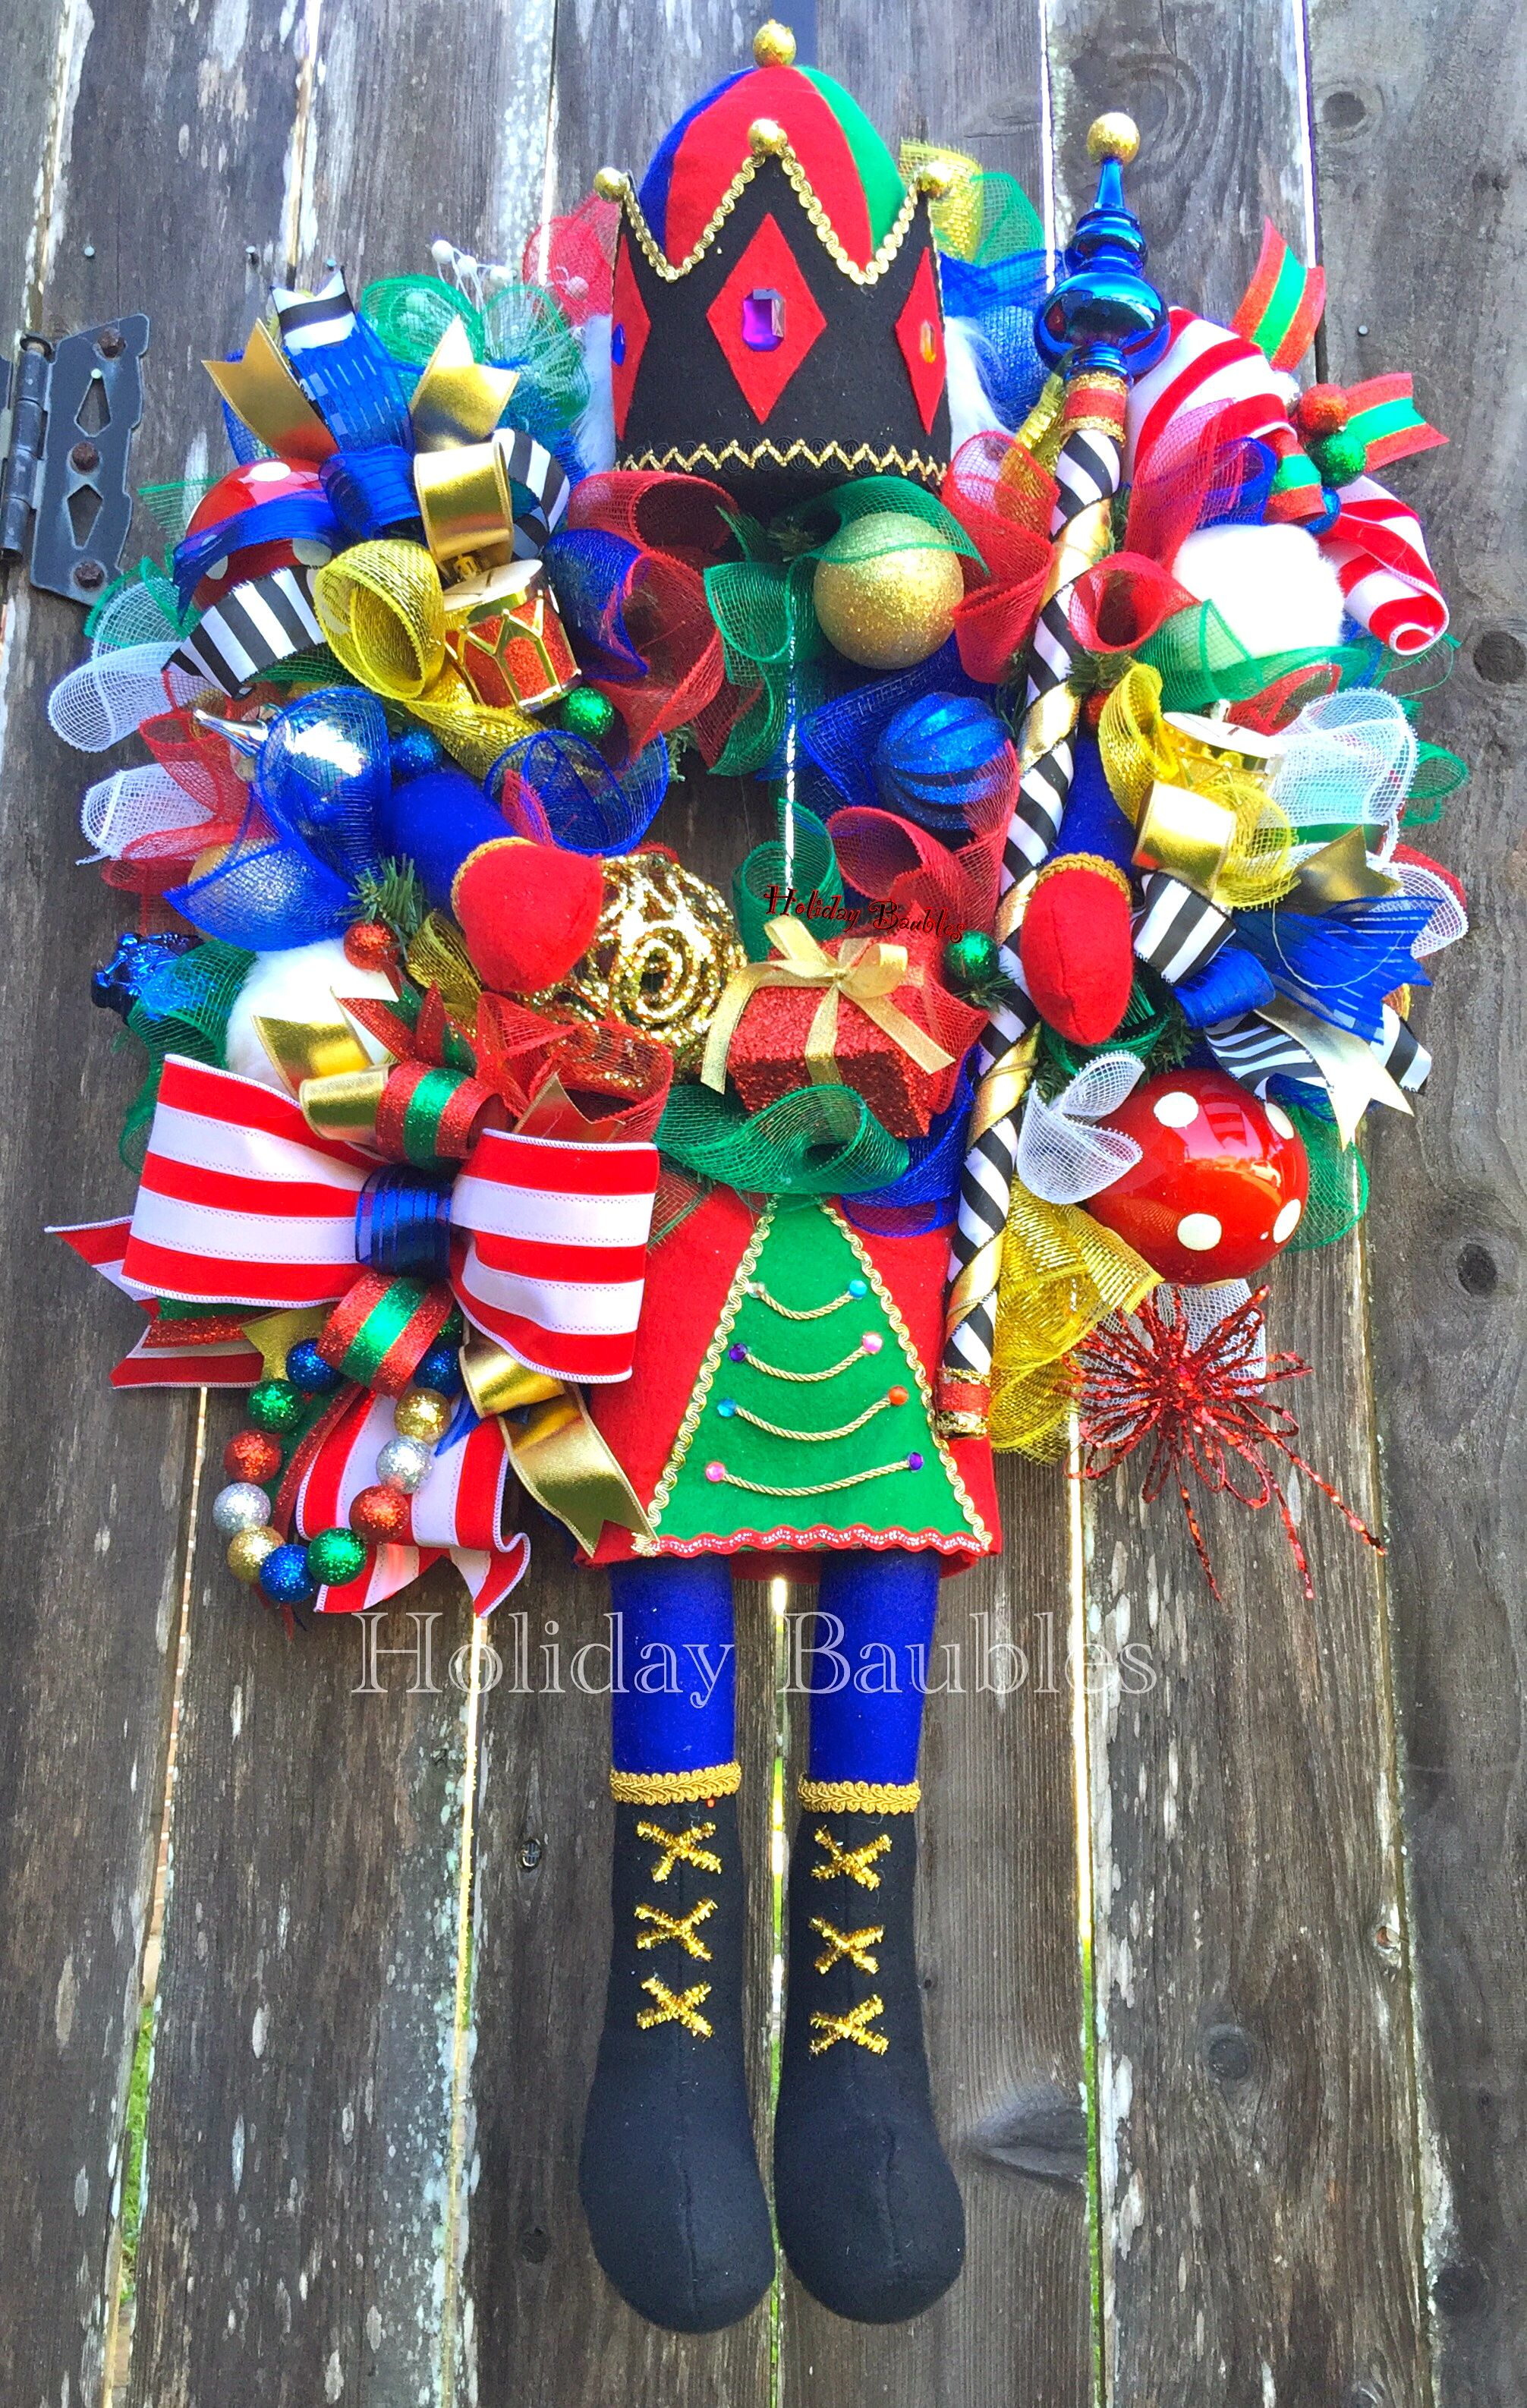 Toy Sol r Nutcracker by Holiday Baubles